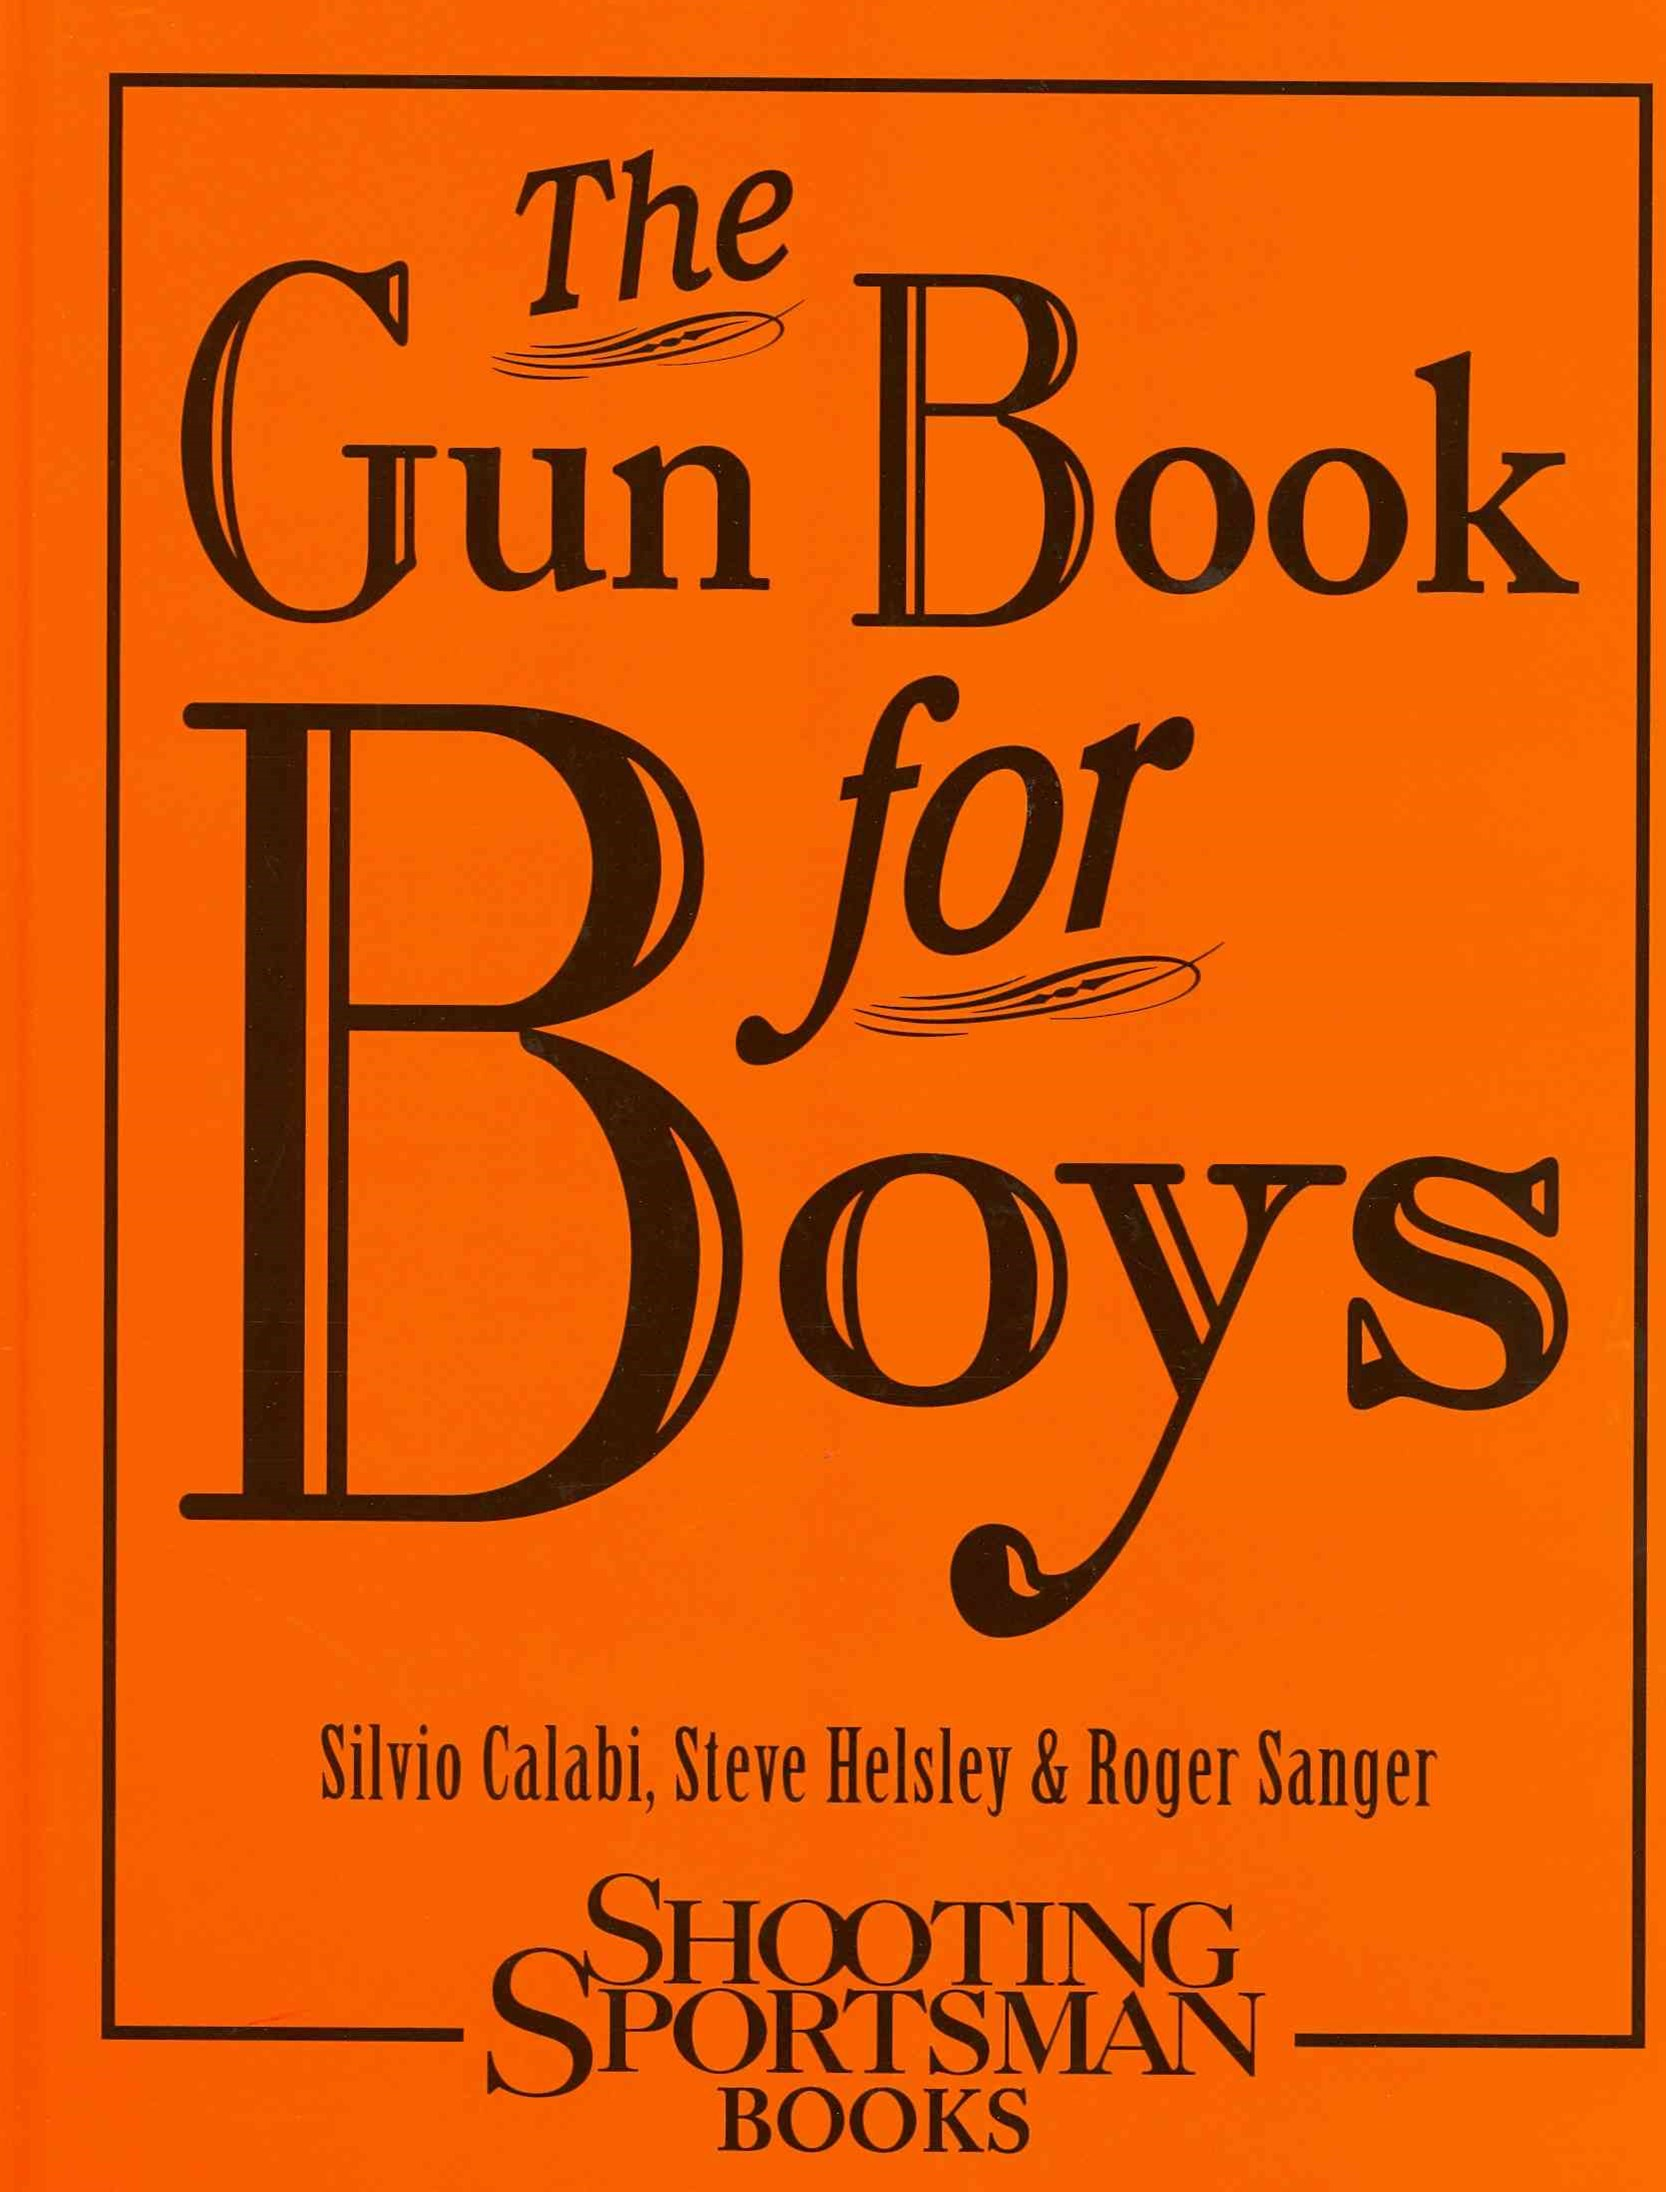 The Gun Books for Boys